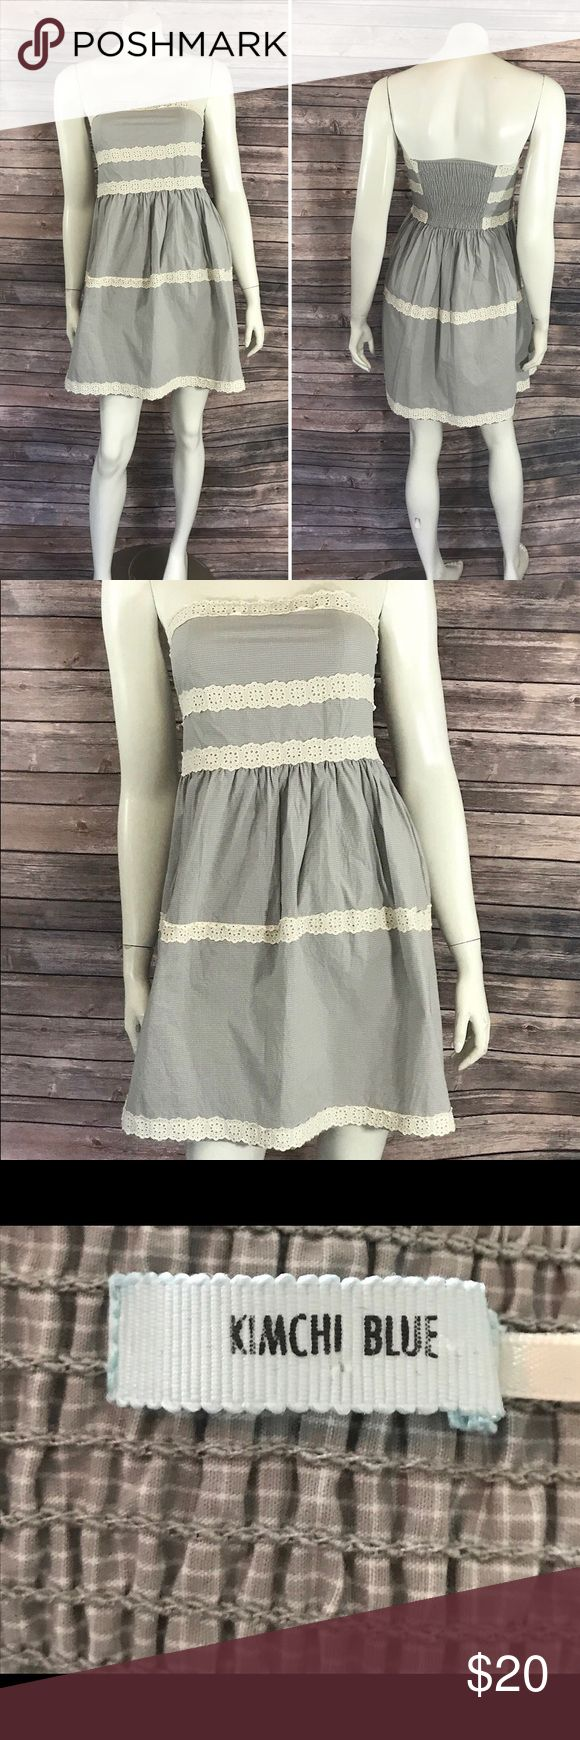 Kimchi Blue Womens Sun Dress Size Small Gray Beige Kimchi Blue Womens Sun Dress Size Small Gray Beige Strapless Urban Outfitters. Measurements: (in inches) Underarm to underarm: 14 Length: 26 Waist: 26  Good, gently used condition Kimchi Blue Dresses Mini